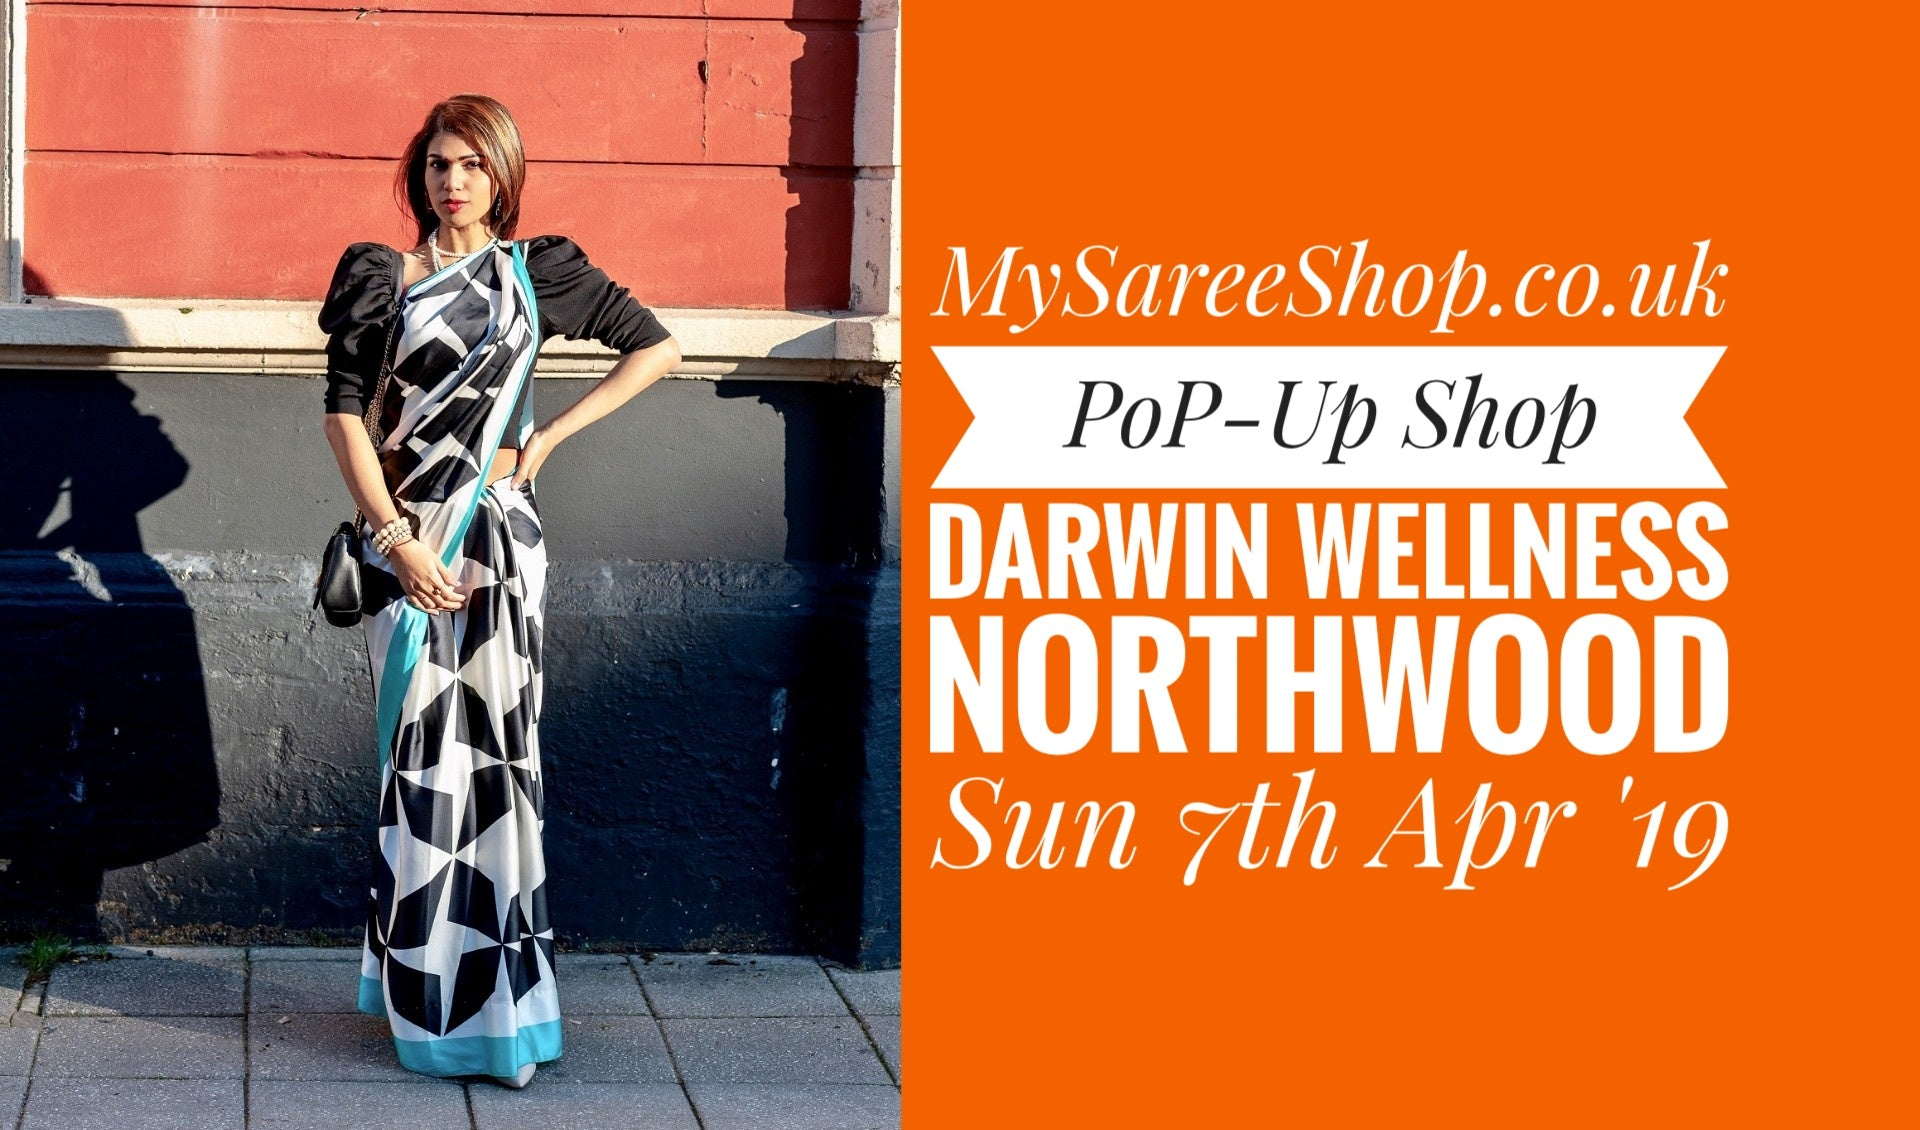 MYSAREESHOP POP-UP SHOP (April 2019)